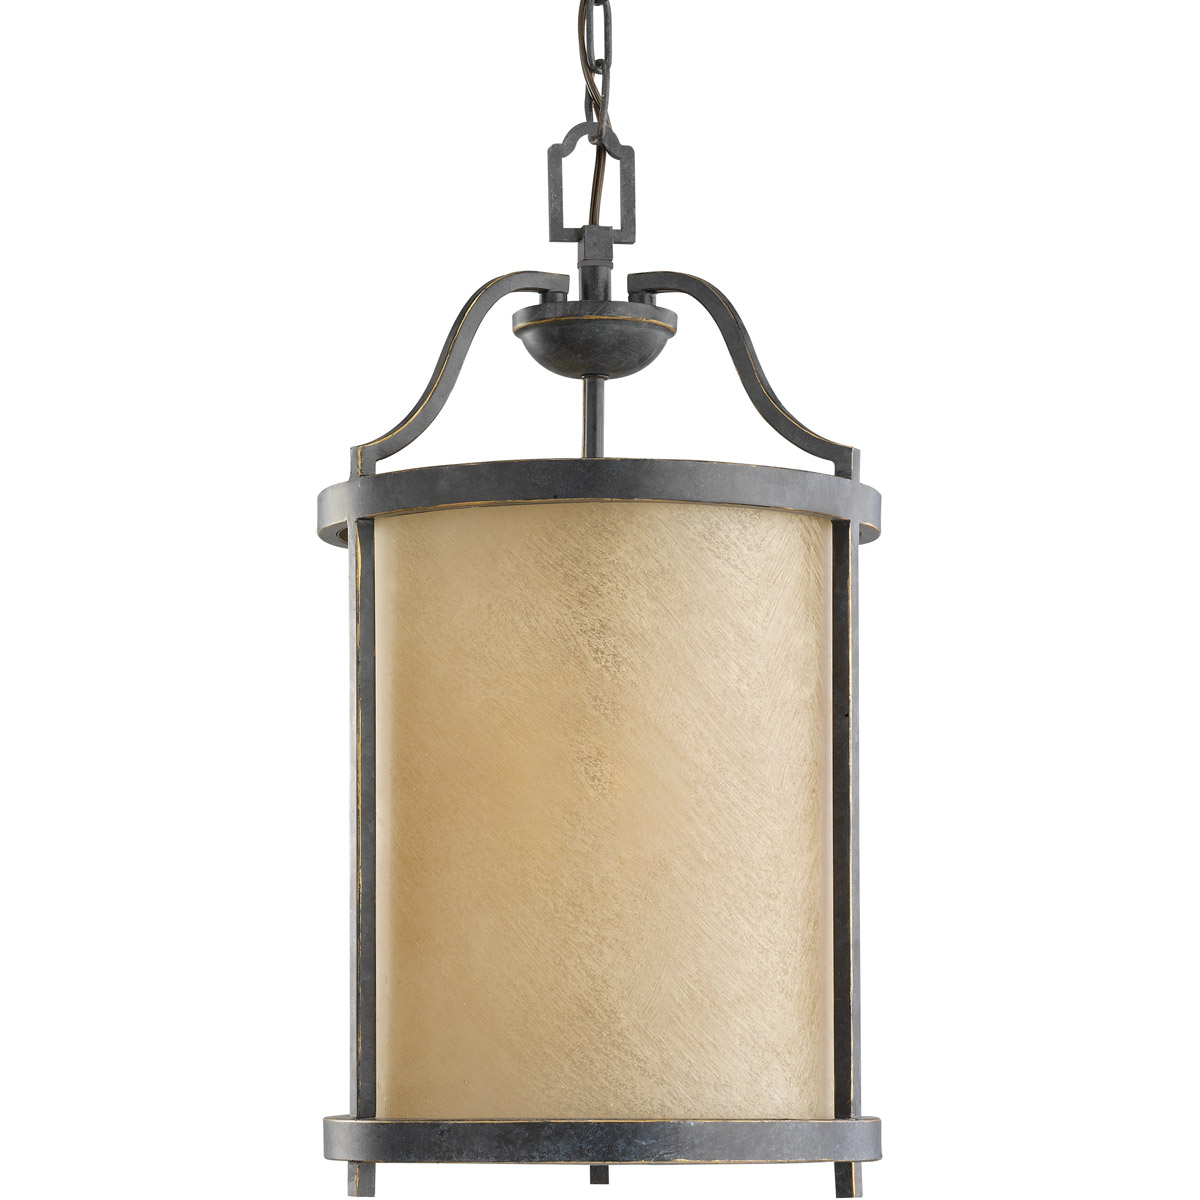 Sea Gull 51520-845 Roslyn 1 Light 11 inch Flemish Bronze Pendant Ceiling Light in Standard photo